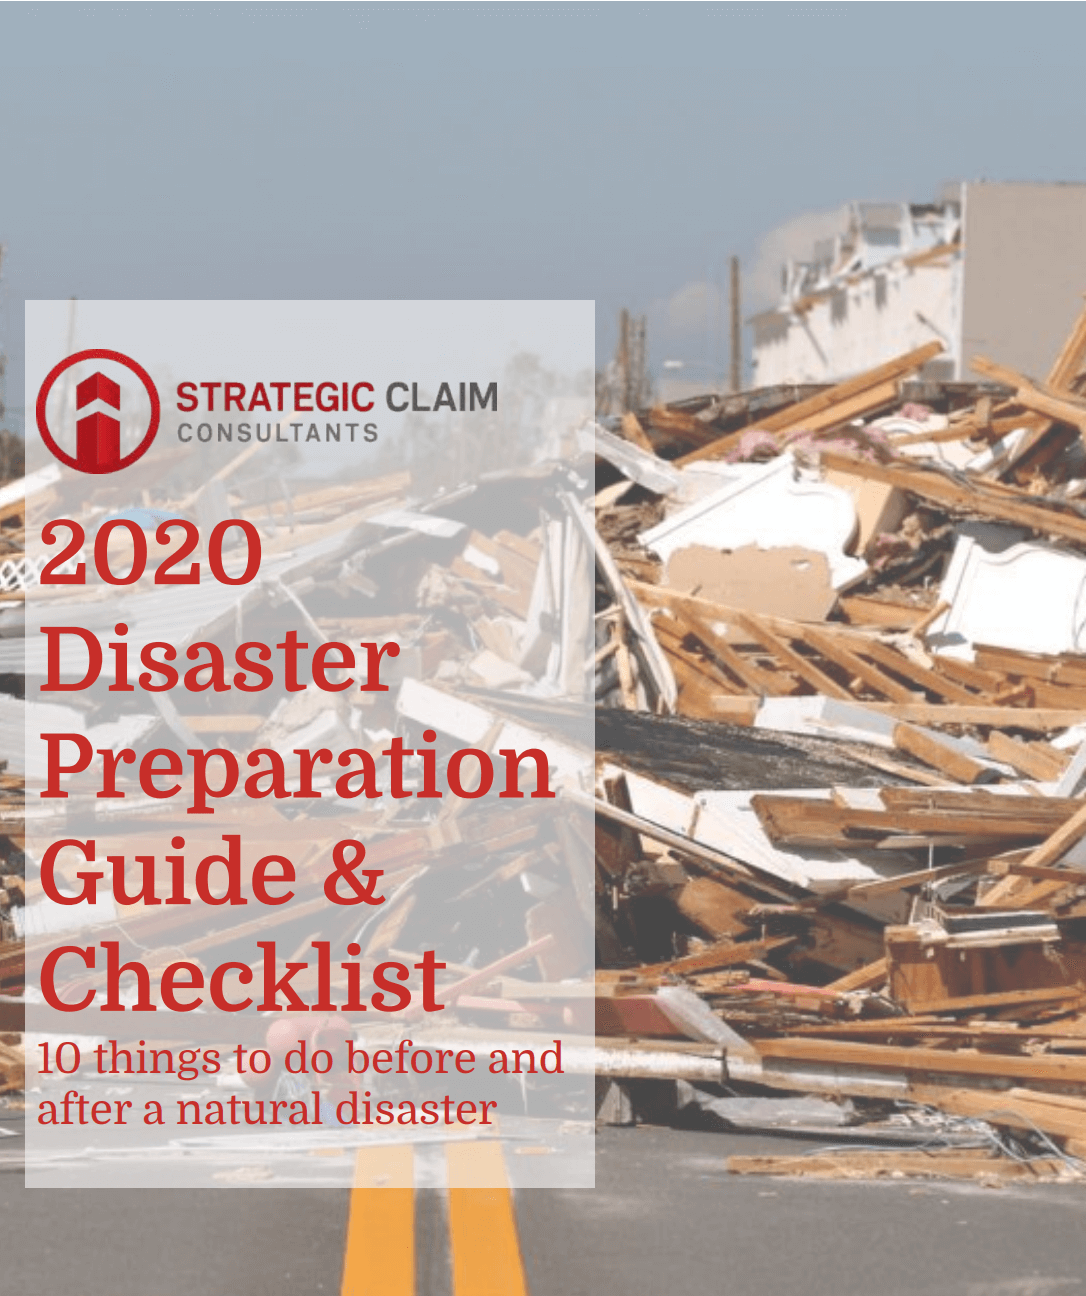 2020 Disaster Prep Guide & Checklist | Strategic Claim Consultants